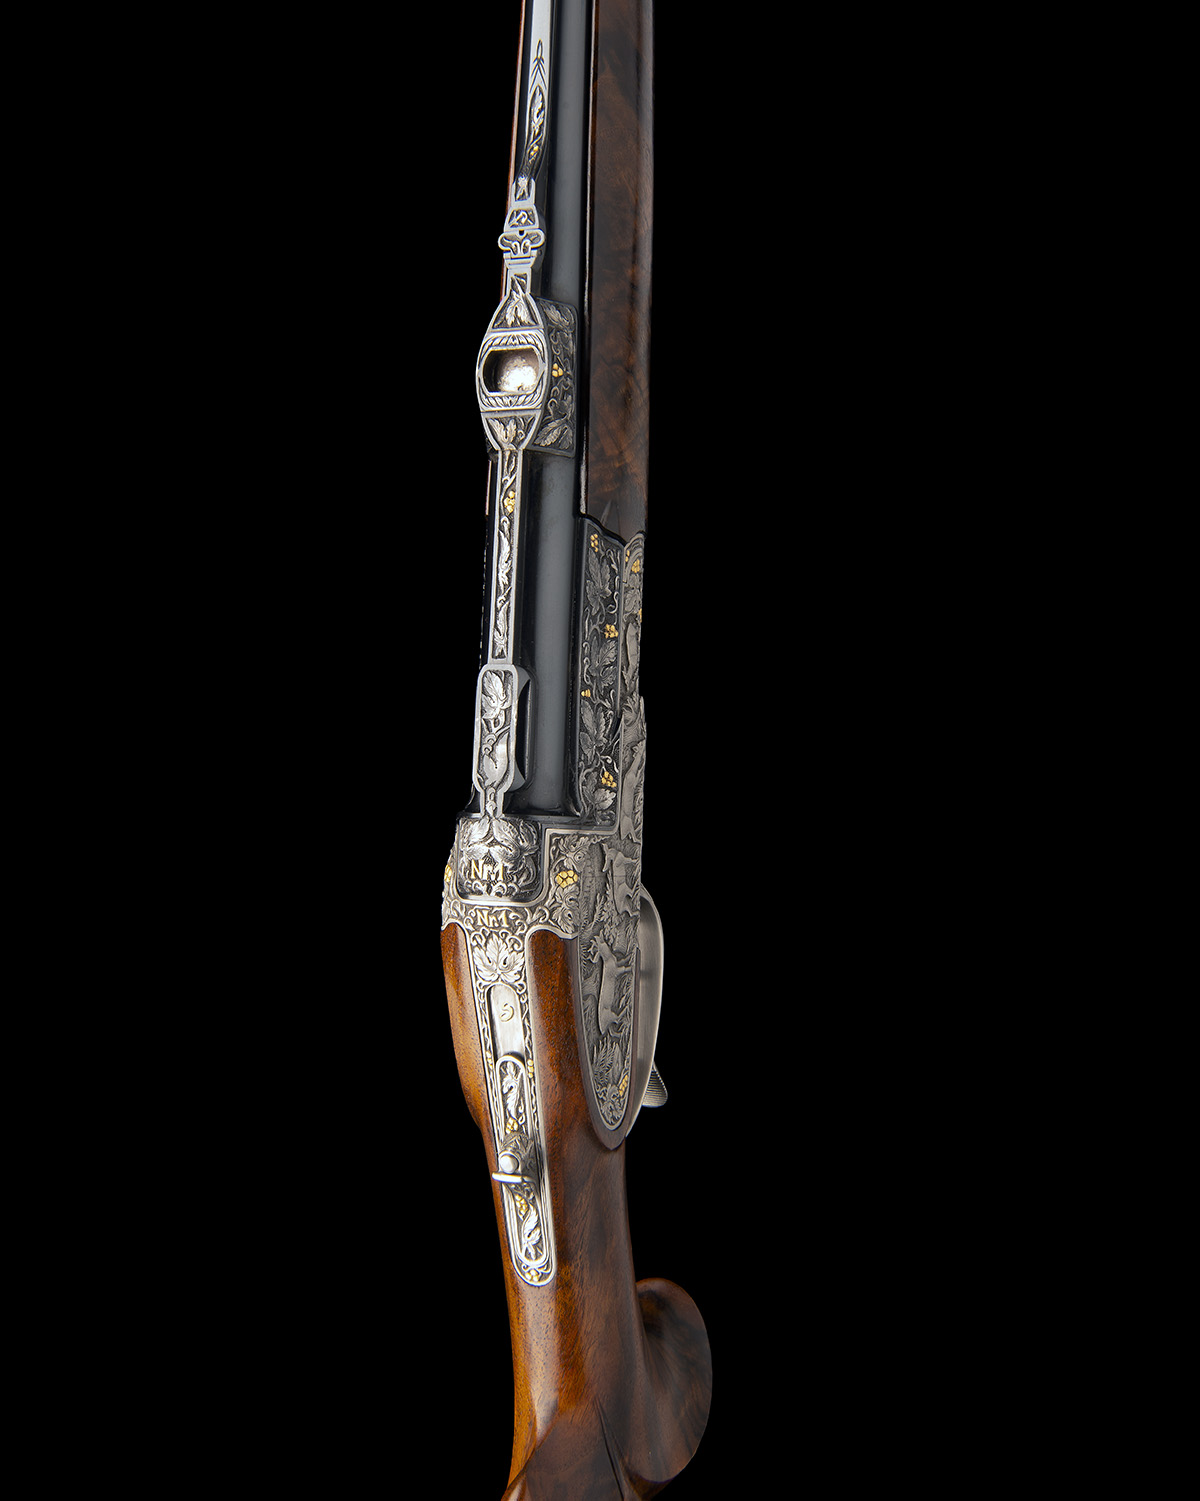 H. SCHEIRING AN 8X57RS / 5.6X50R MAG. JAEGER PATENT SIDEPLATED OVER AND UNDER PUSH-FORWARD - Image 6 of 12